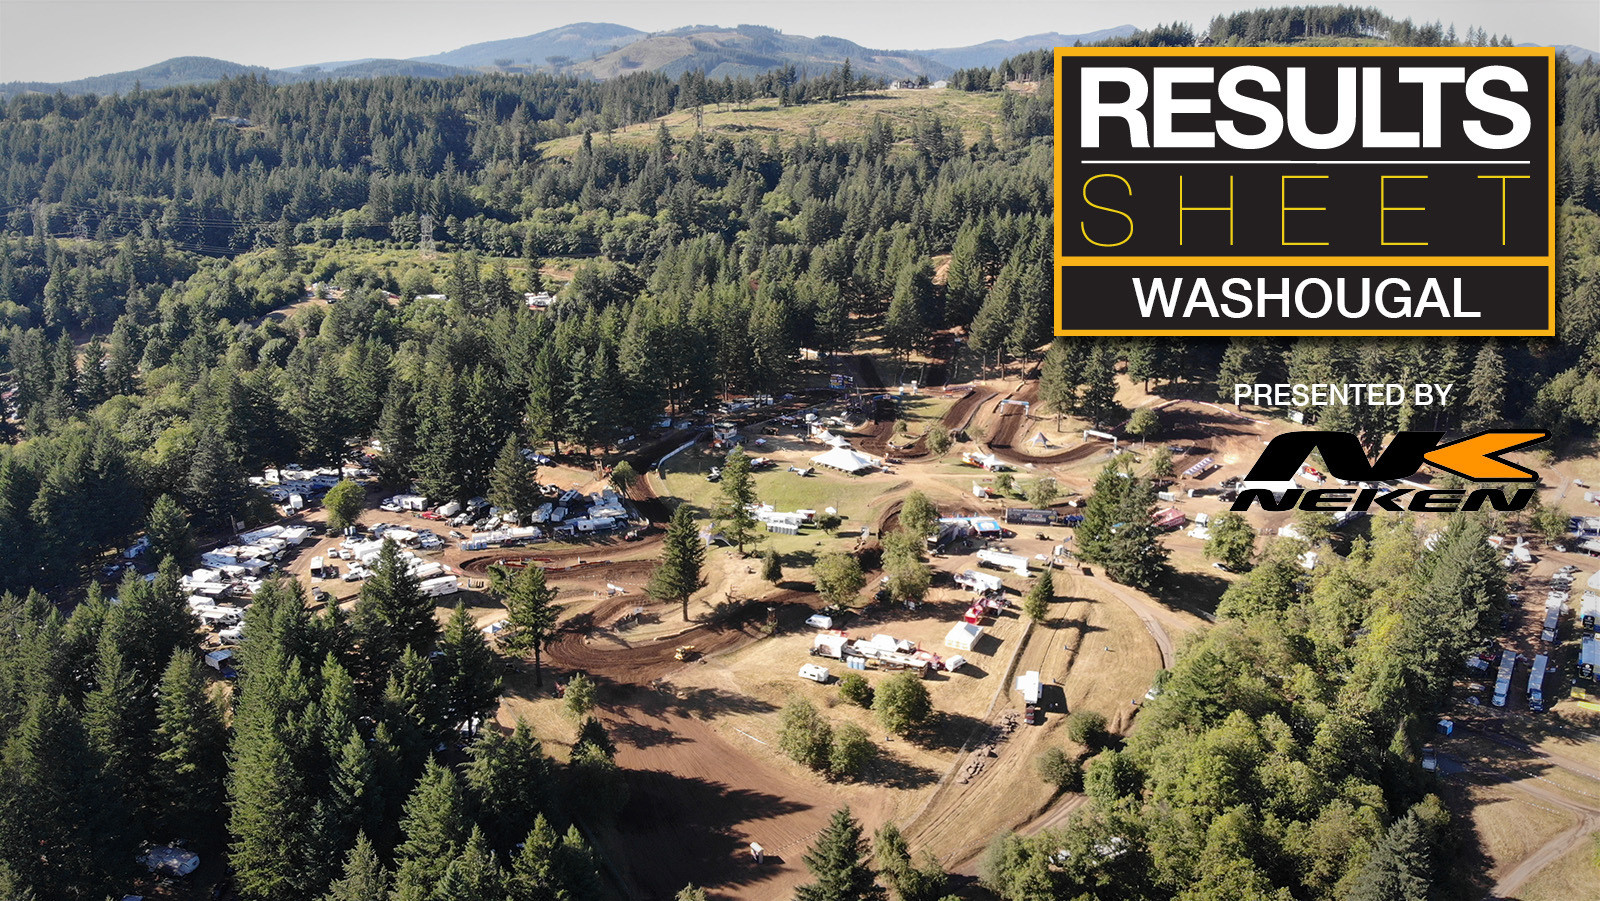 Results Sheet: 2018 Washougal Motocross National